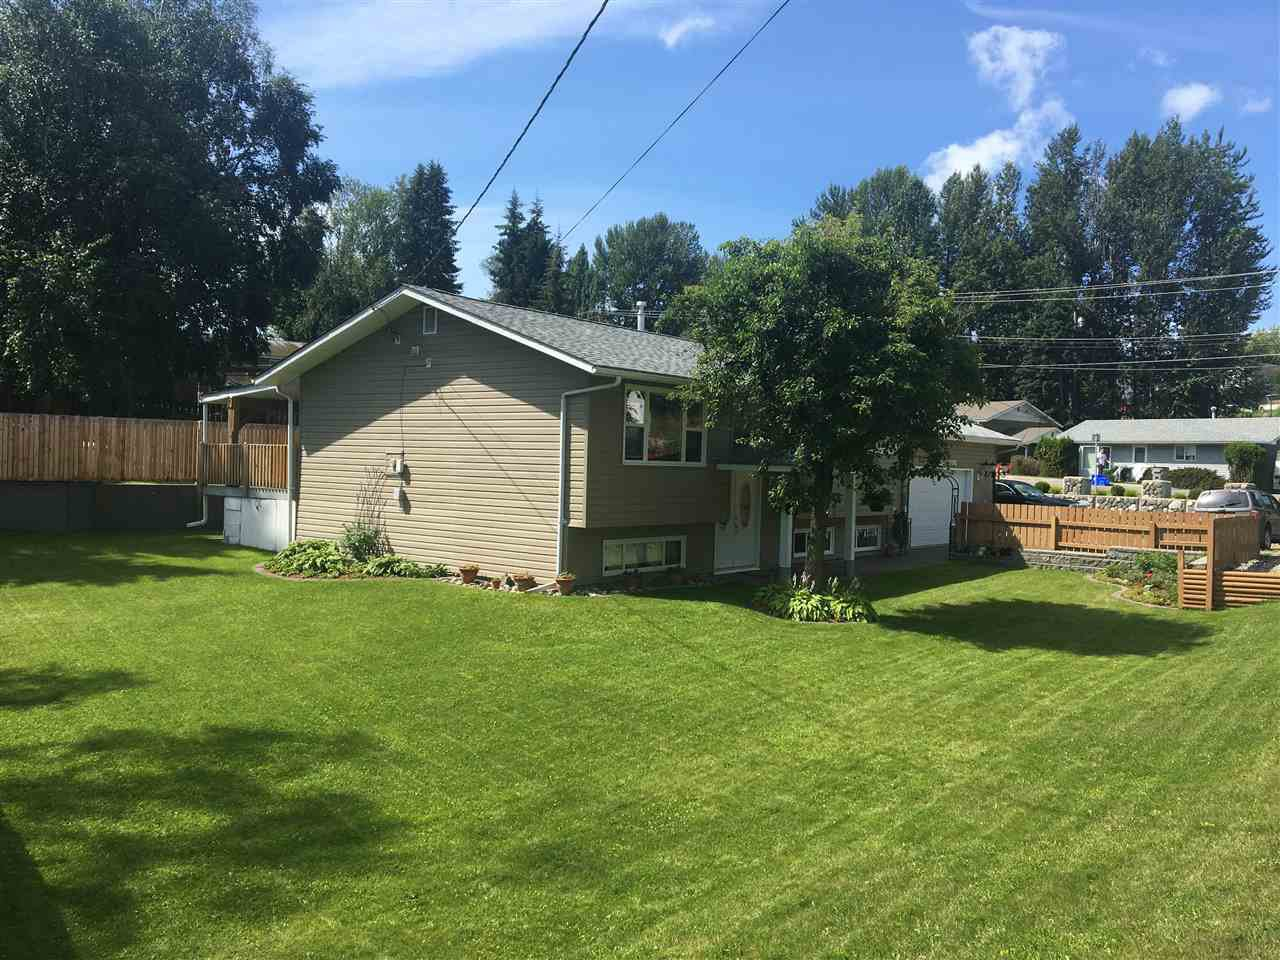 Photo 32: Photos: 1270 LEWIS Drive in Quesnel: Quesnel - Town House for sale (Quesnel (Zone 28))  : MLS®# R2478328